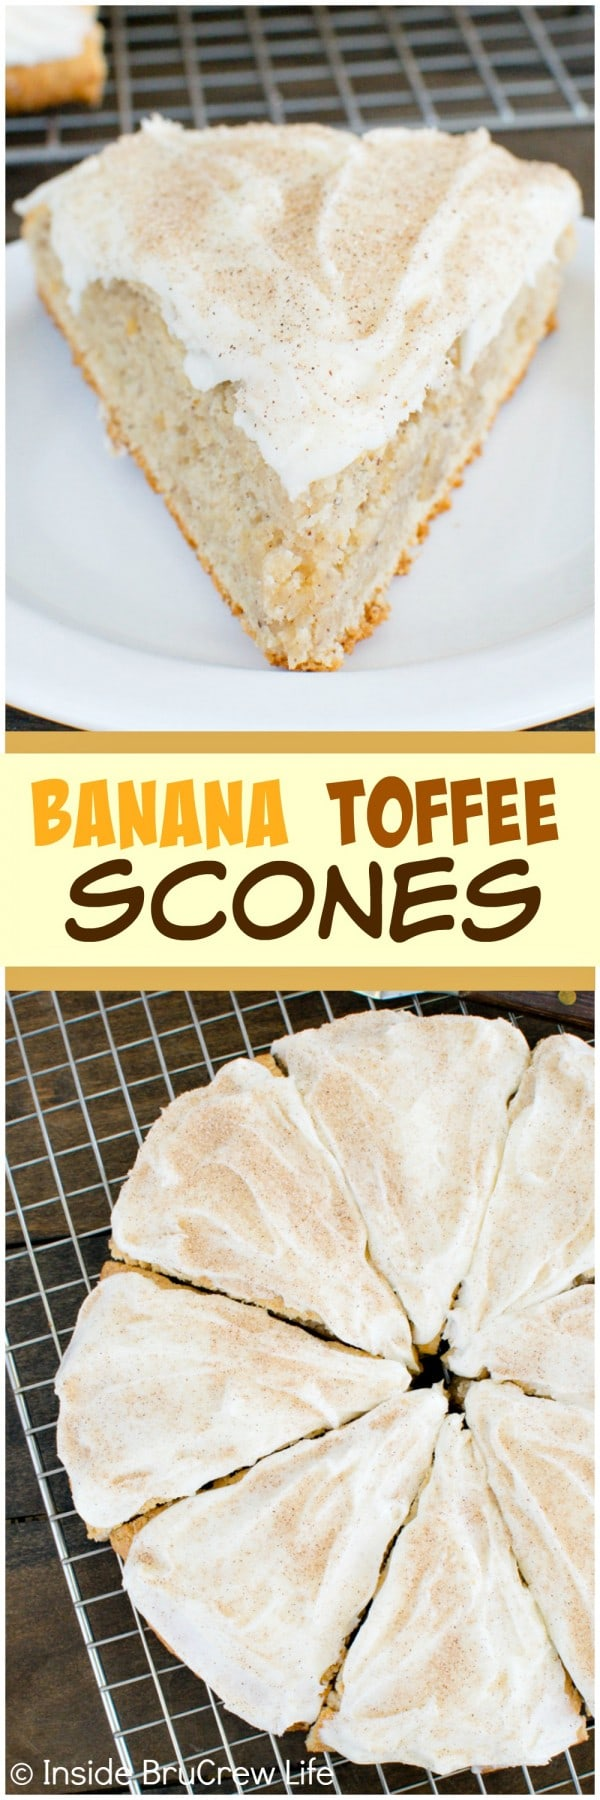 Banana Toffee Scones - these soft and flakey banana scones have toffee bits and cinnamon sugar frosting. Awesome breakfast recipe!